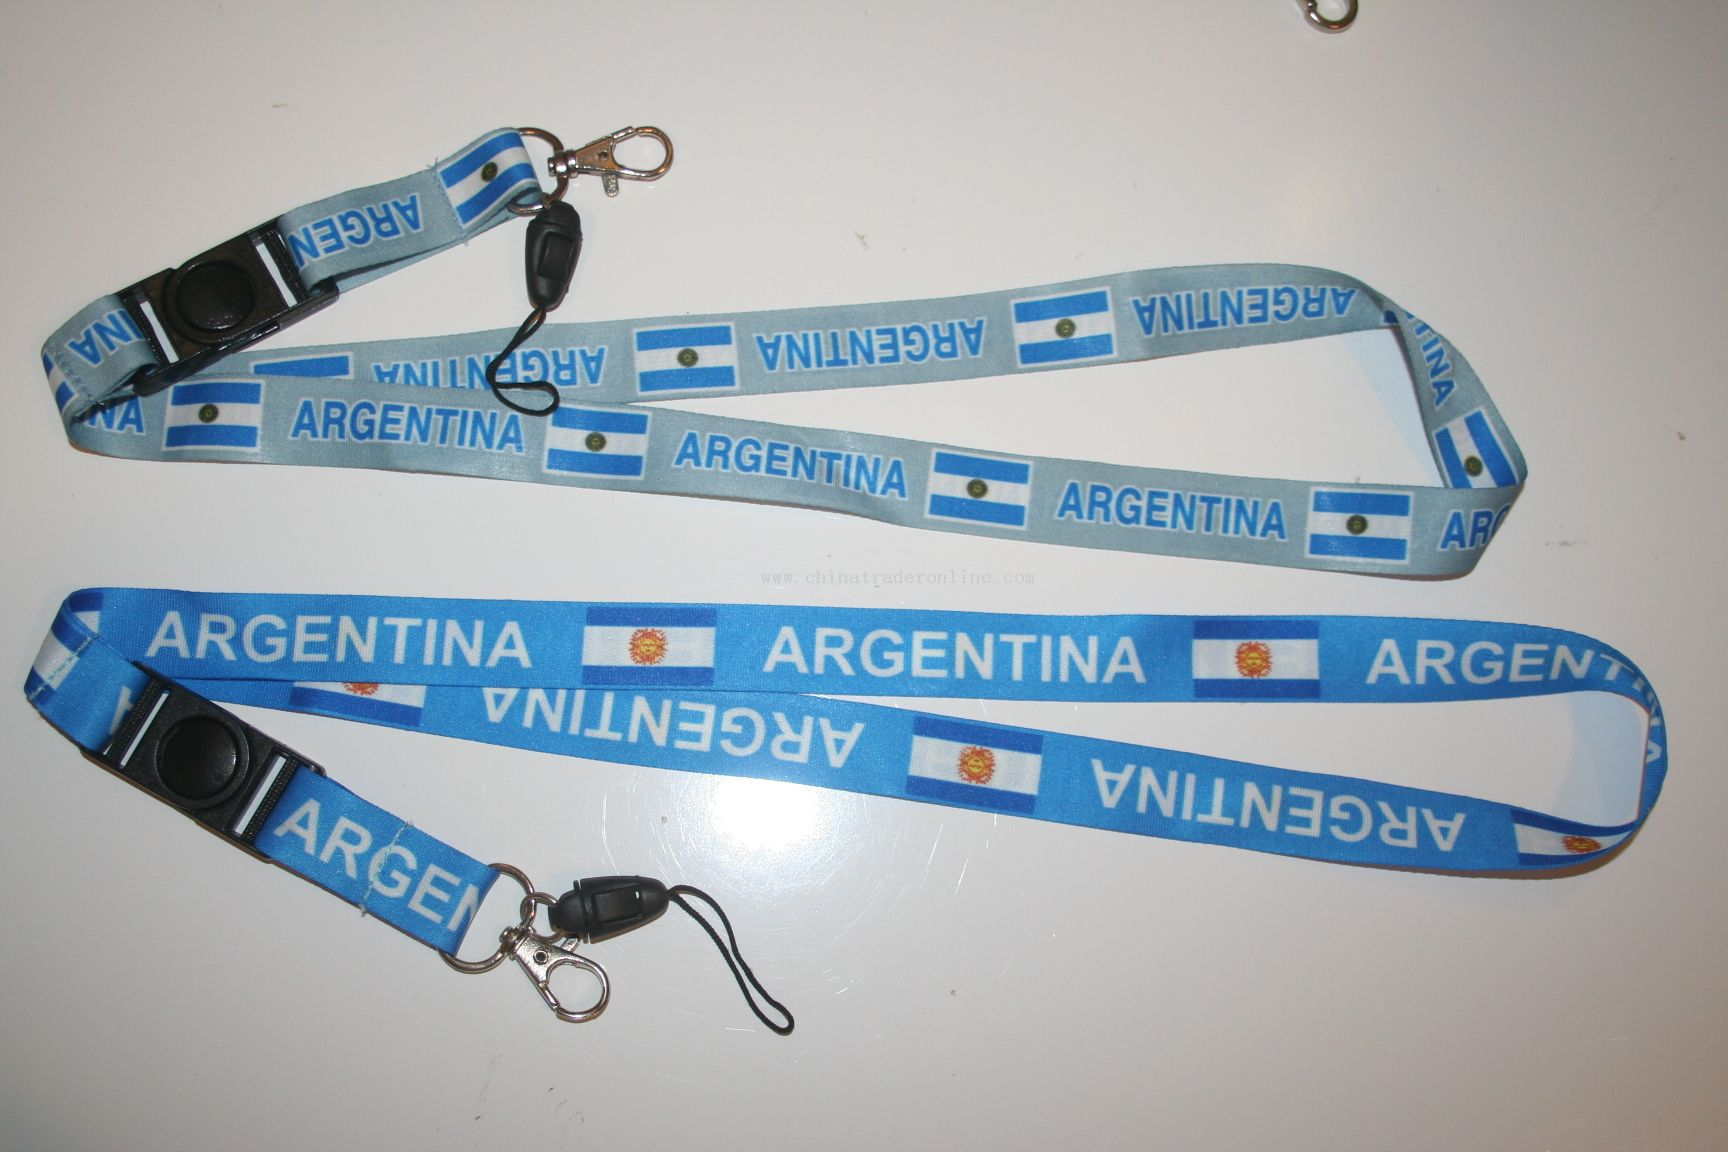 ARGENTINA COUNTRY FLAG LANYARDS KEYCHAINS PASSHOLDERS FIFA WORLD CUP SOCCER FOOTBALL